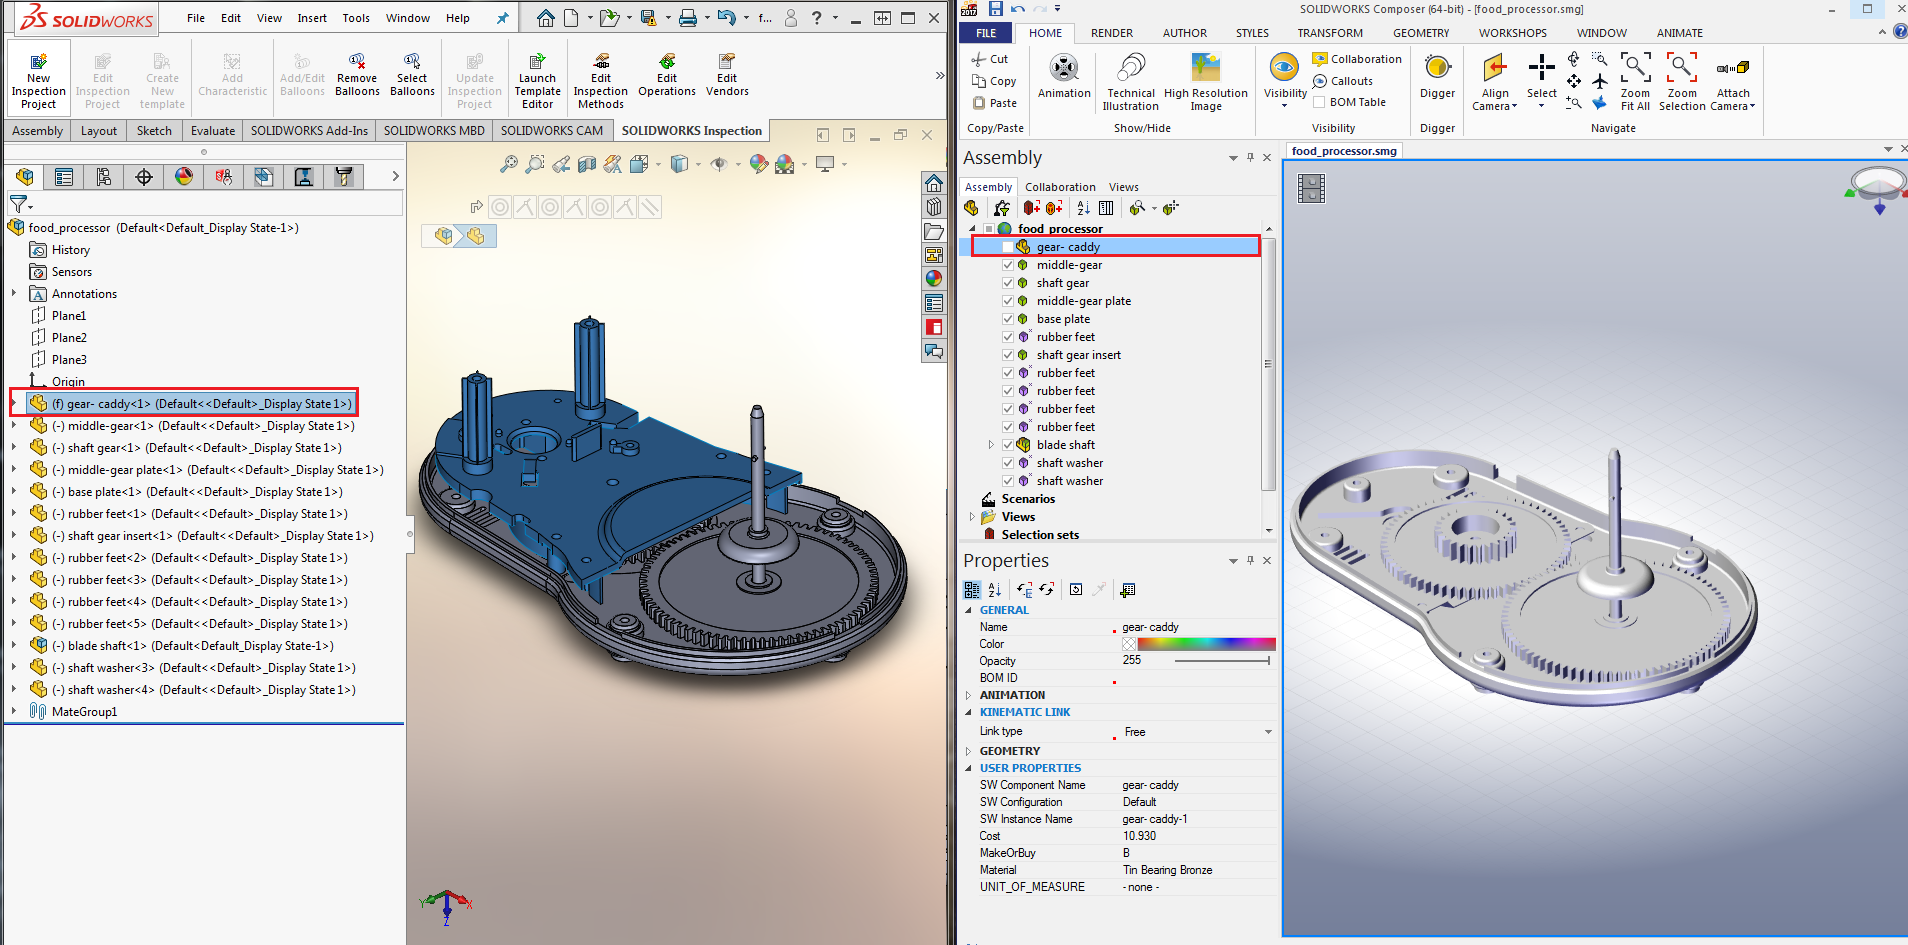 Import/Export surface in SOLIDWORKS Composer